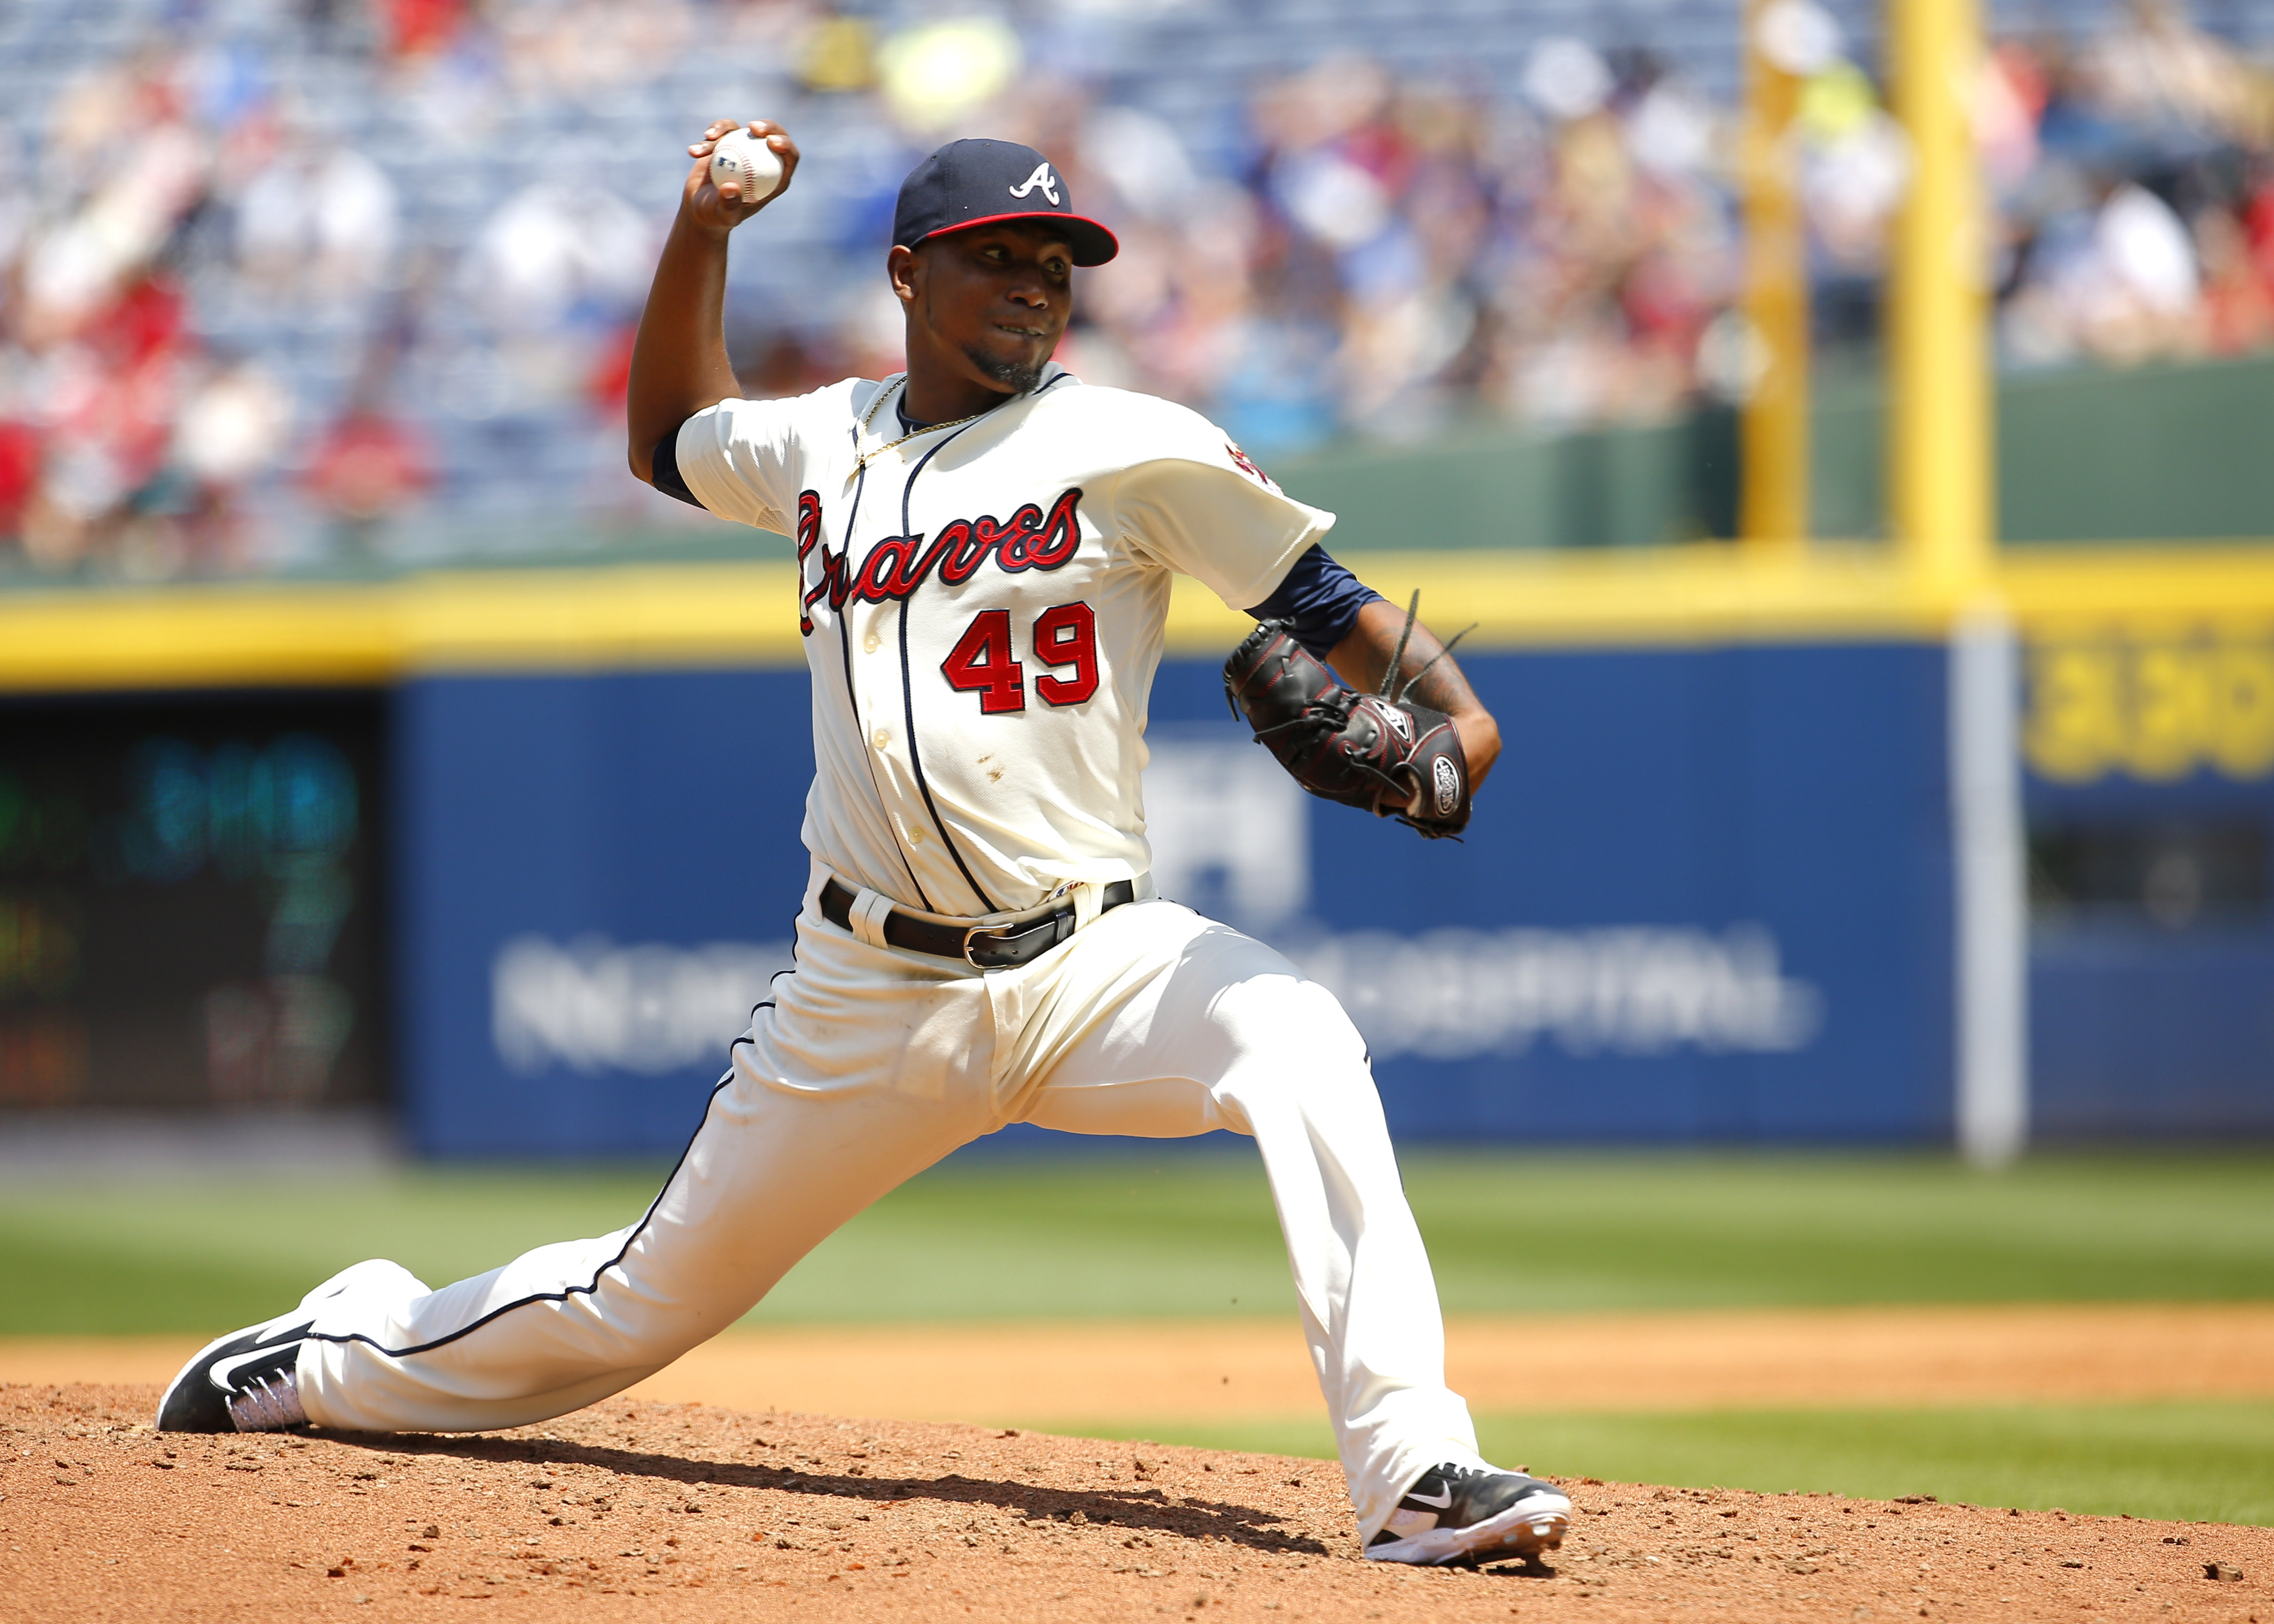 Atlanta Braves starting pitcher Julio Teheran (49) delivers in the fourth inning of a baseball game against the Cincinnati Reds, Sunday, May 3, 2015, in Atlanta. (AP Photo/Todd Kirkland)